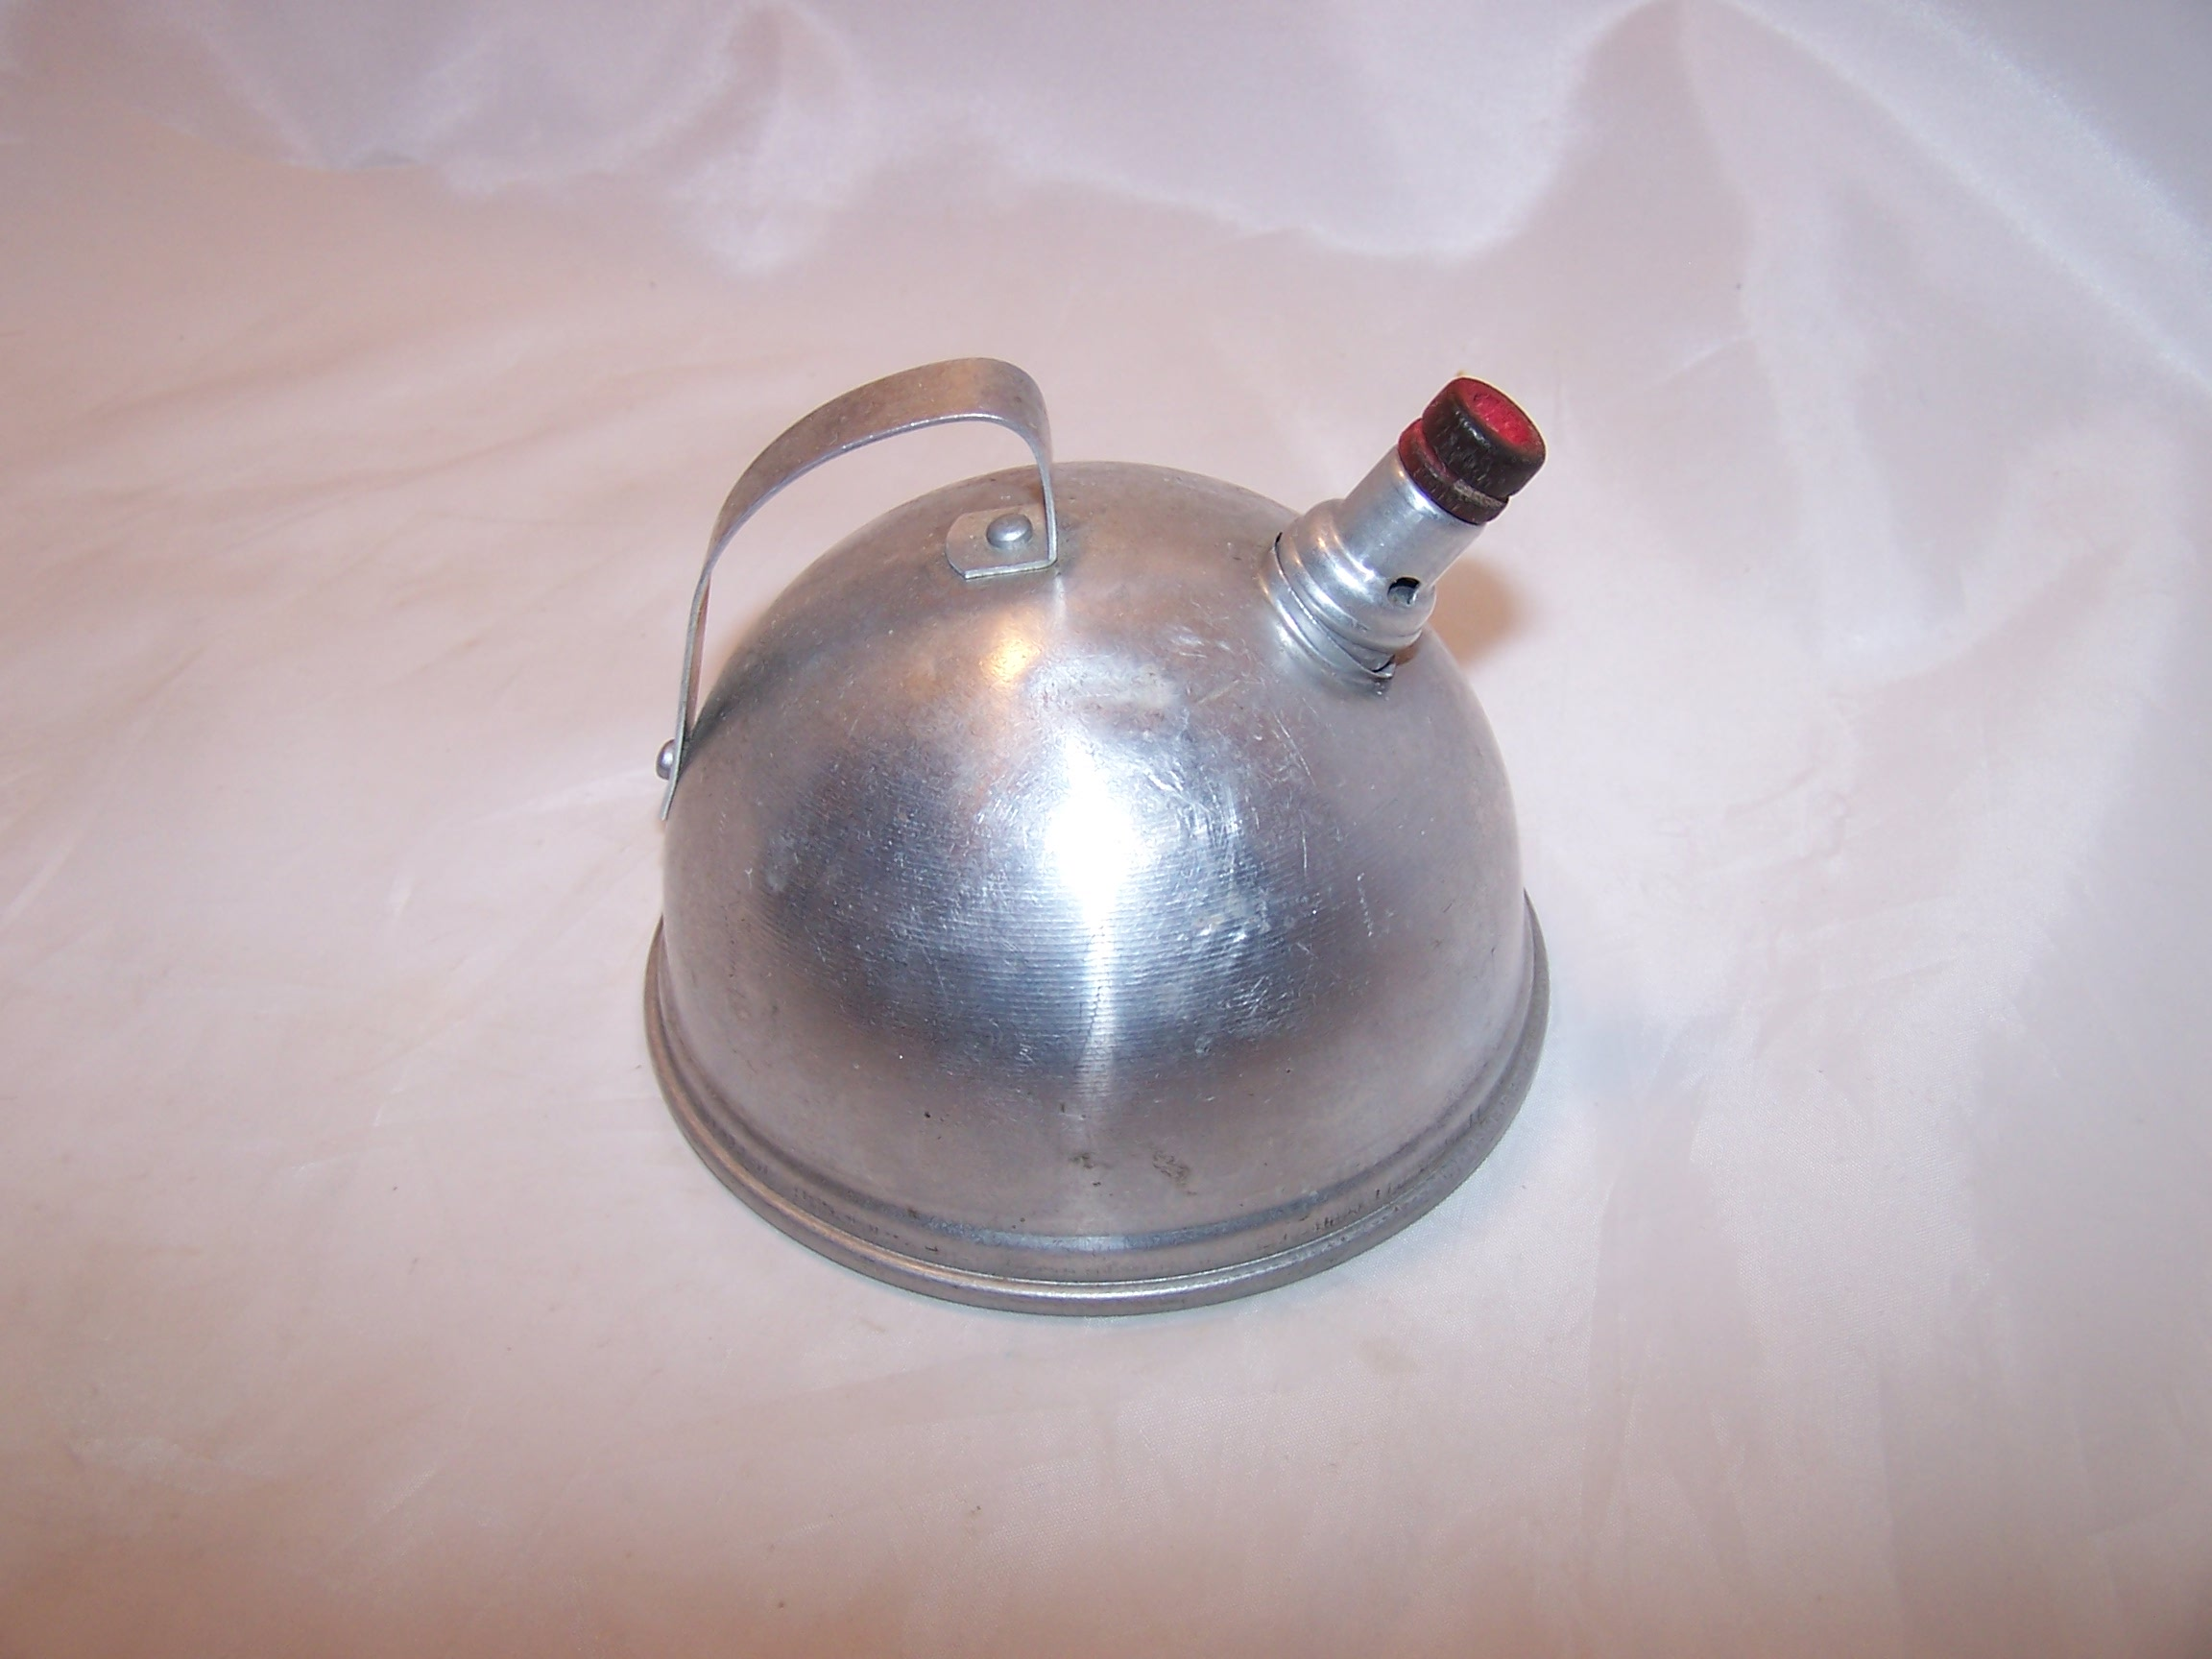 Image 2 of Toy Dome Teapot, Vintage, Aluminum